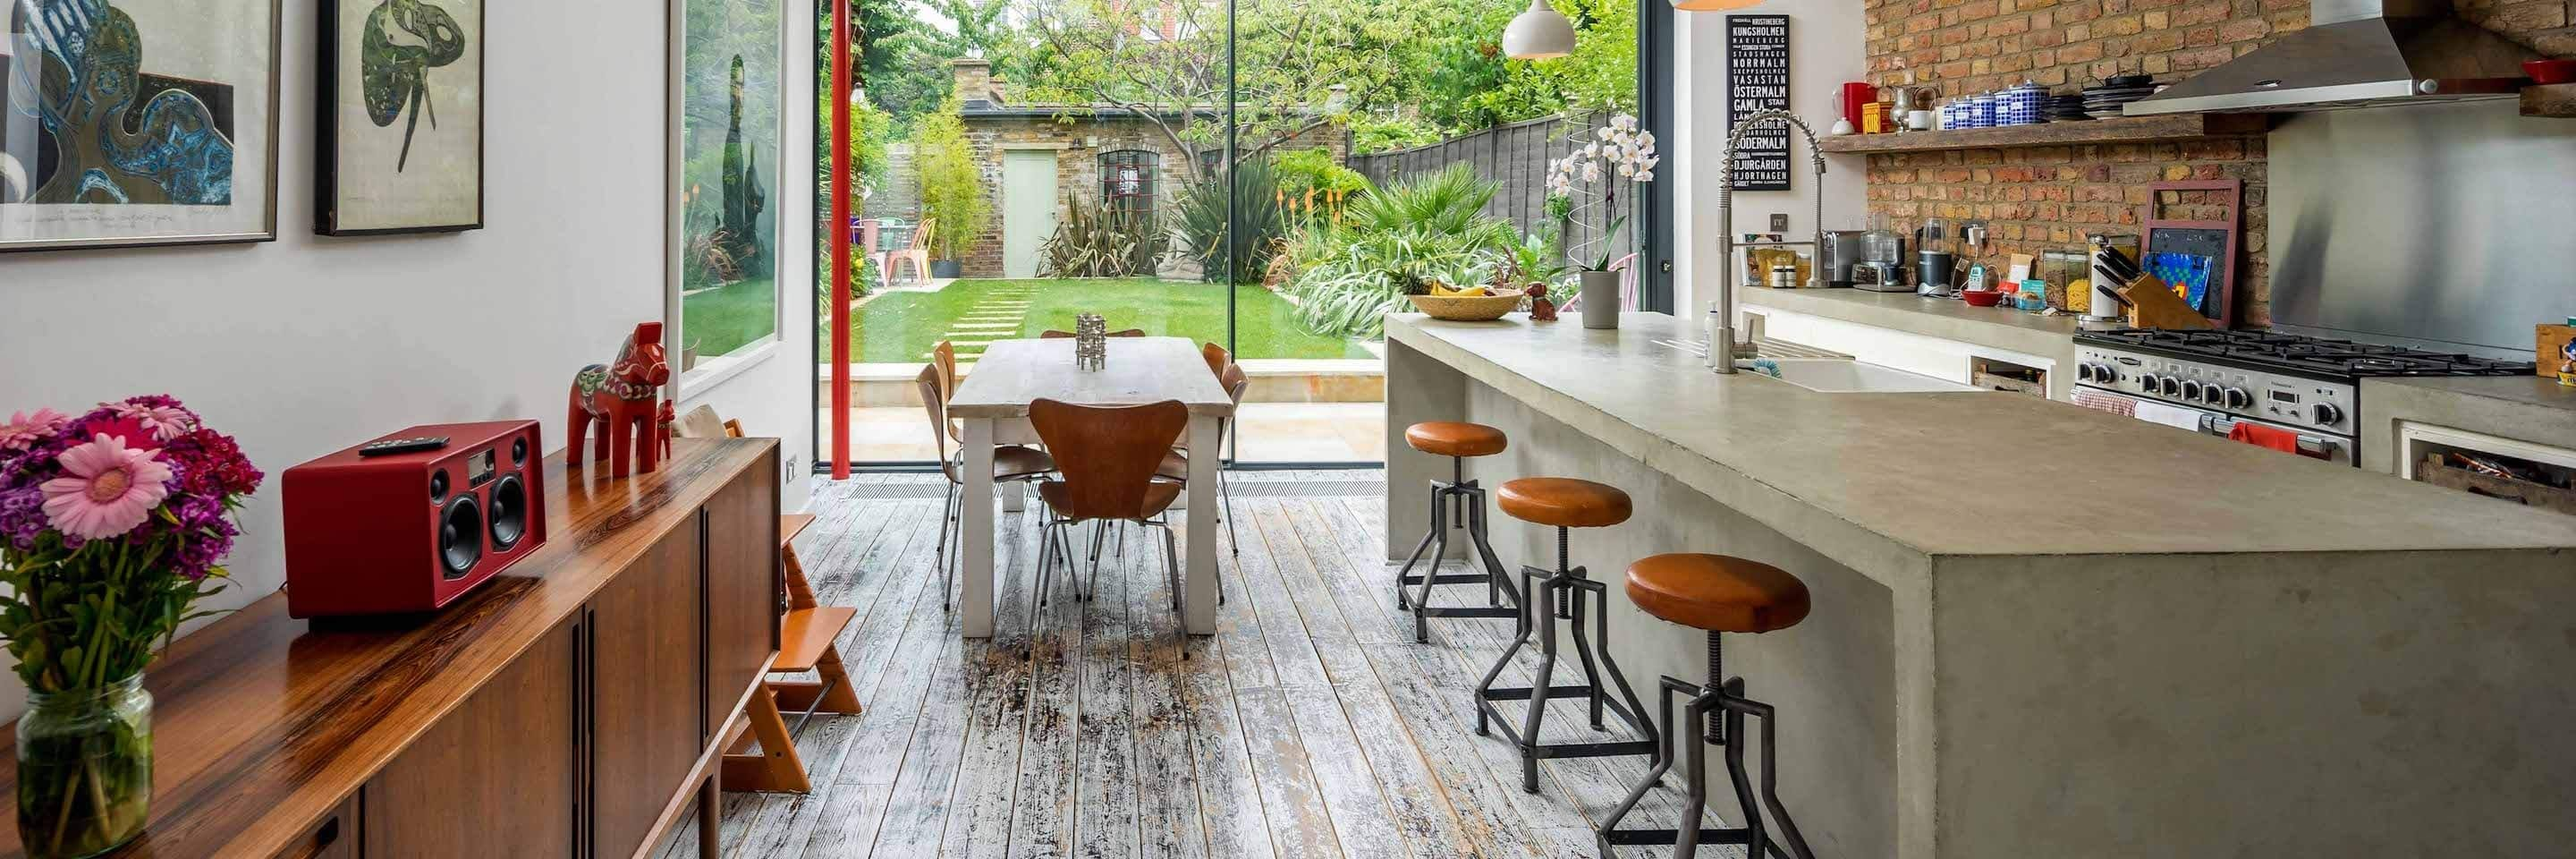 Kitchen interior featuring island bar and breakfast table, with view of outdoor garden.